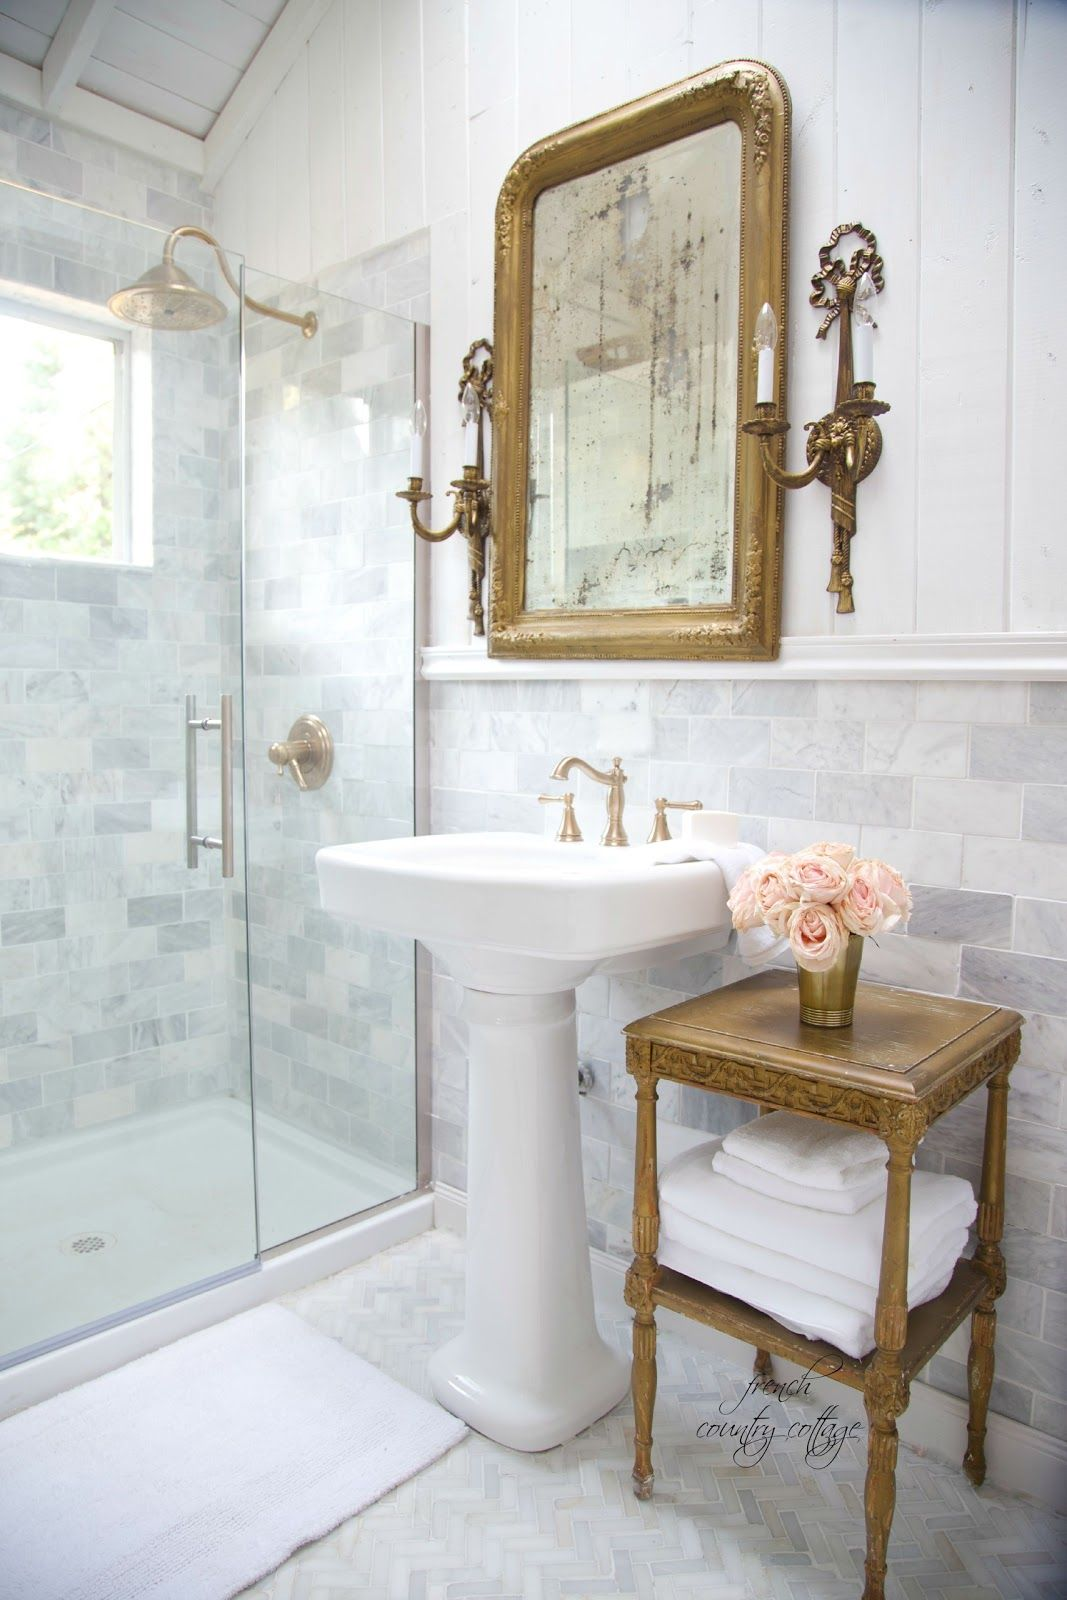 French Cottage Bathroom Renovation Reveal French Country Cottage French Cottage Bathroom French Bathroom Country Bathroom Designs